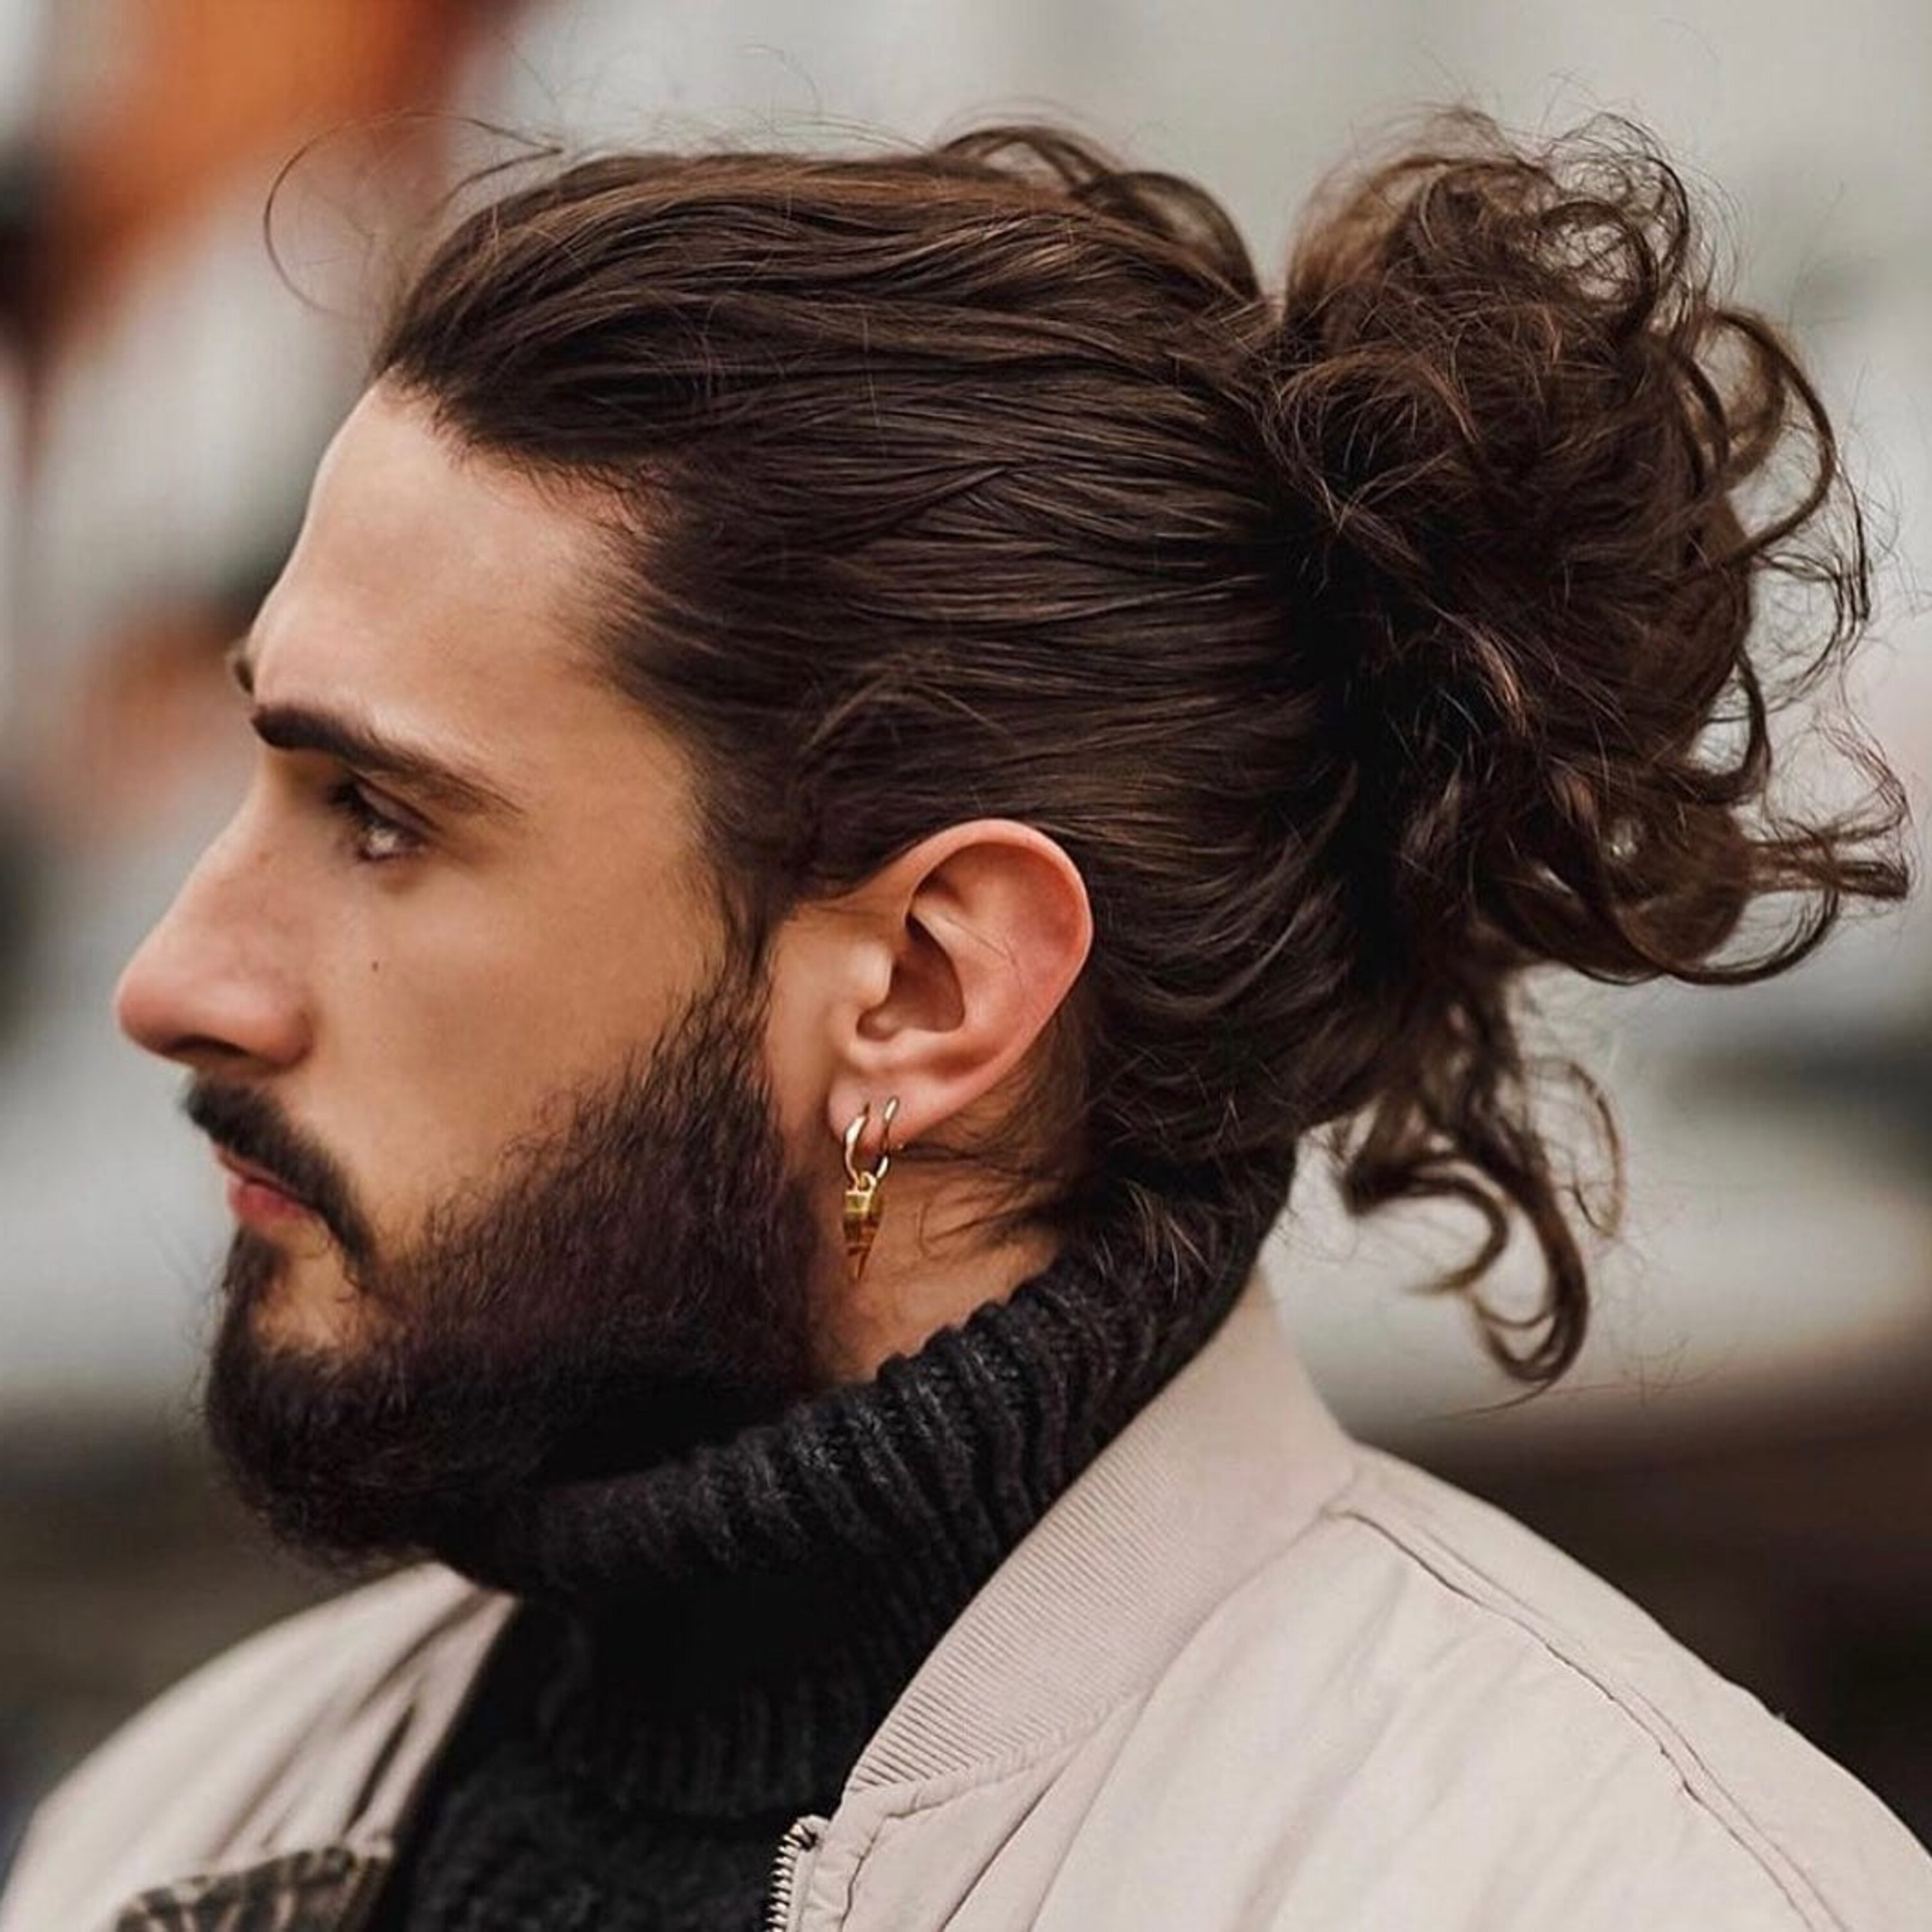 A wavy male hairstyle with a bun.